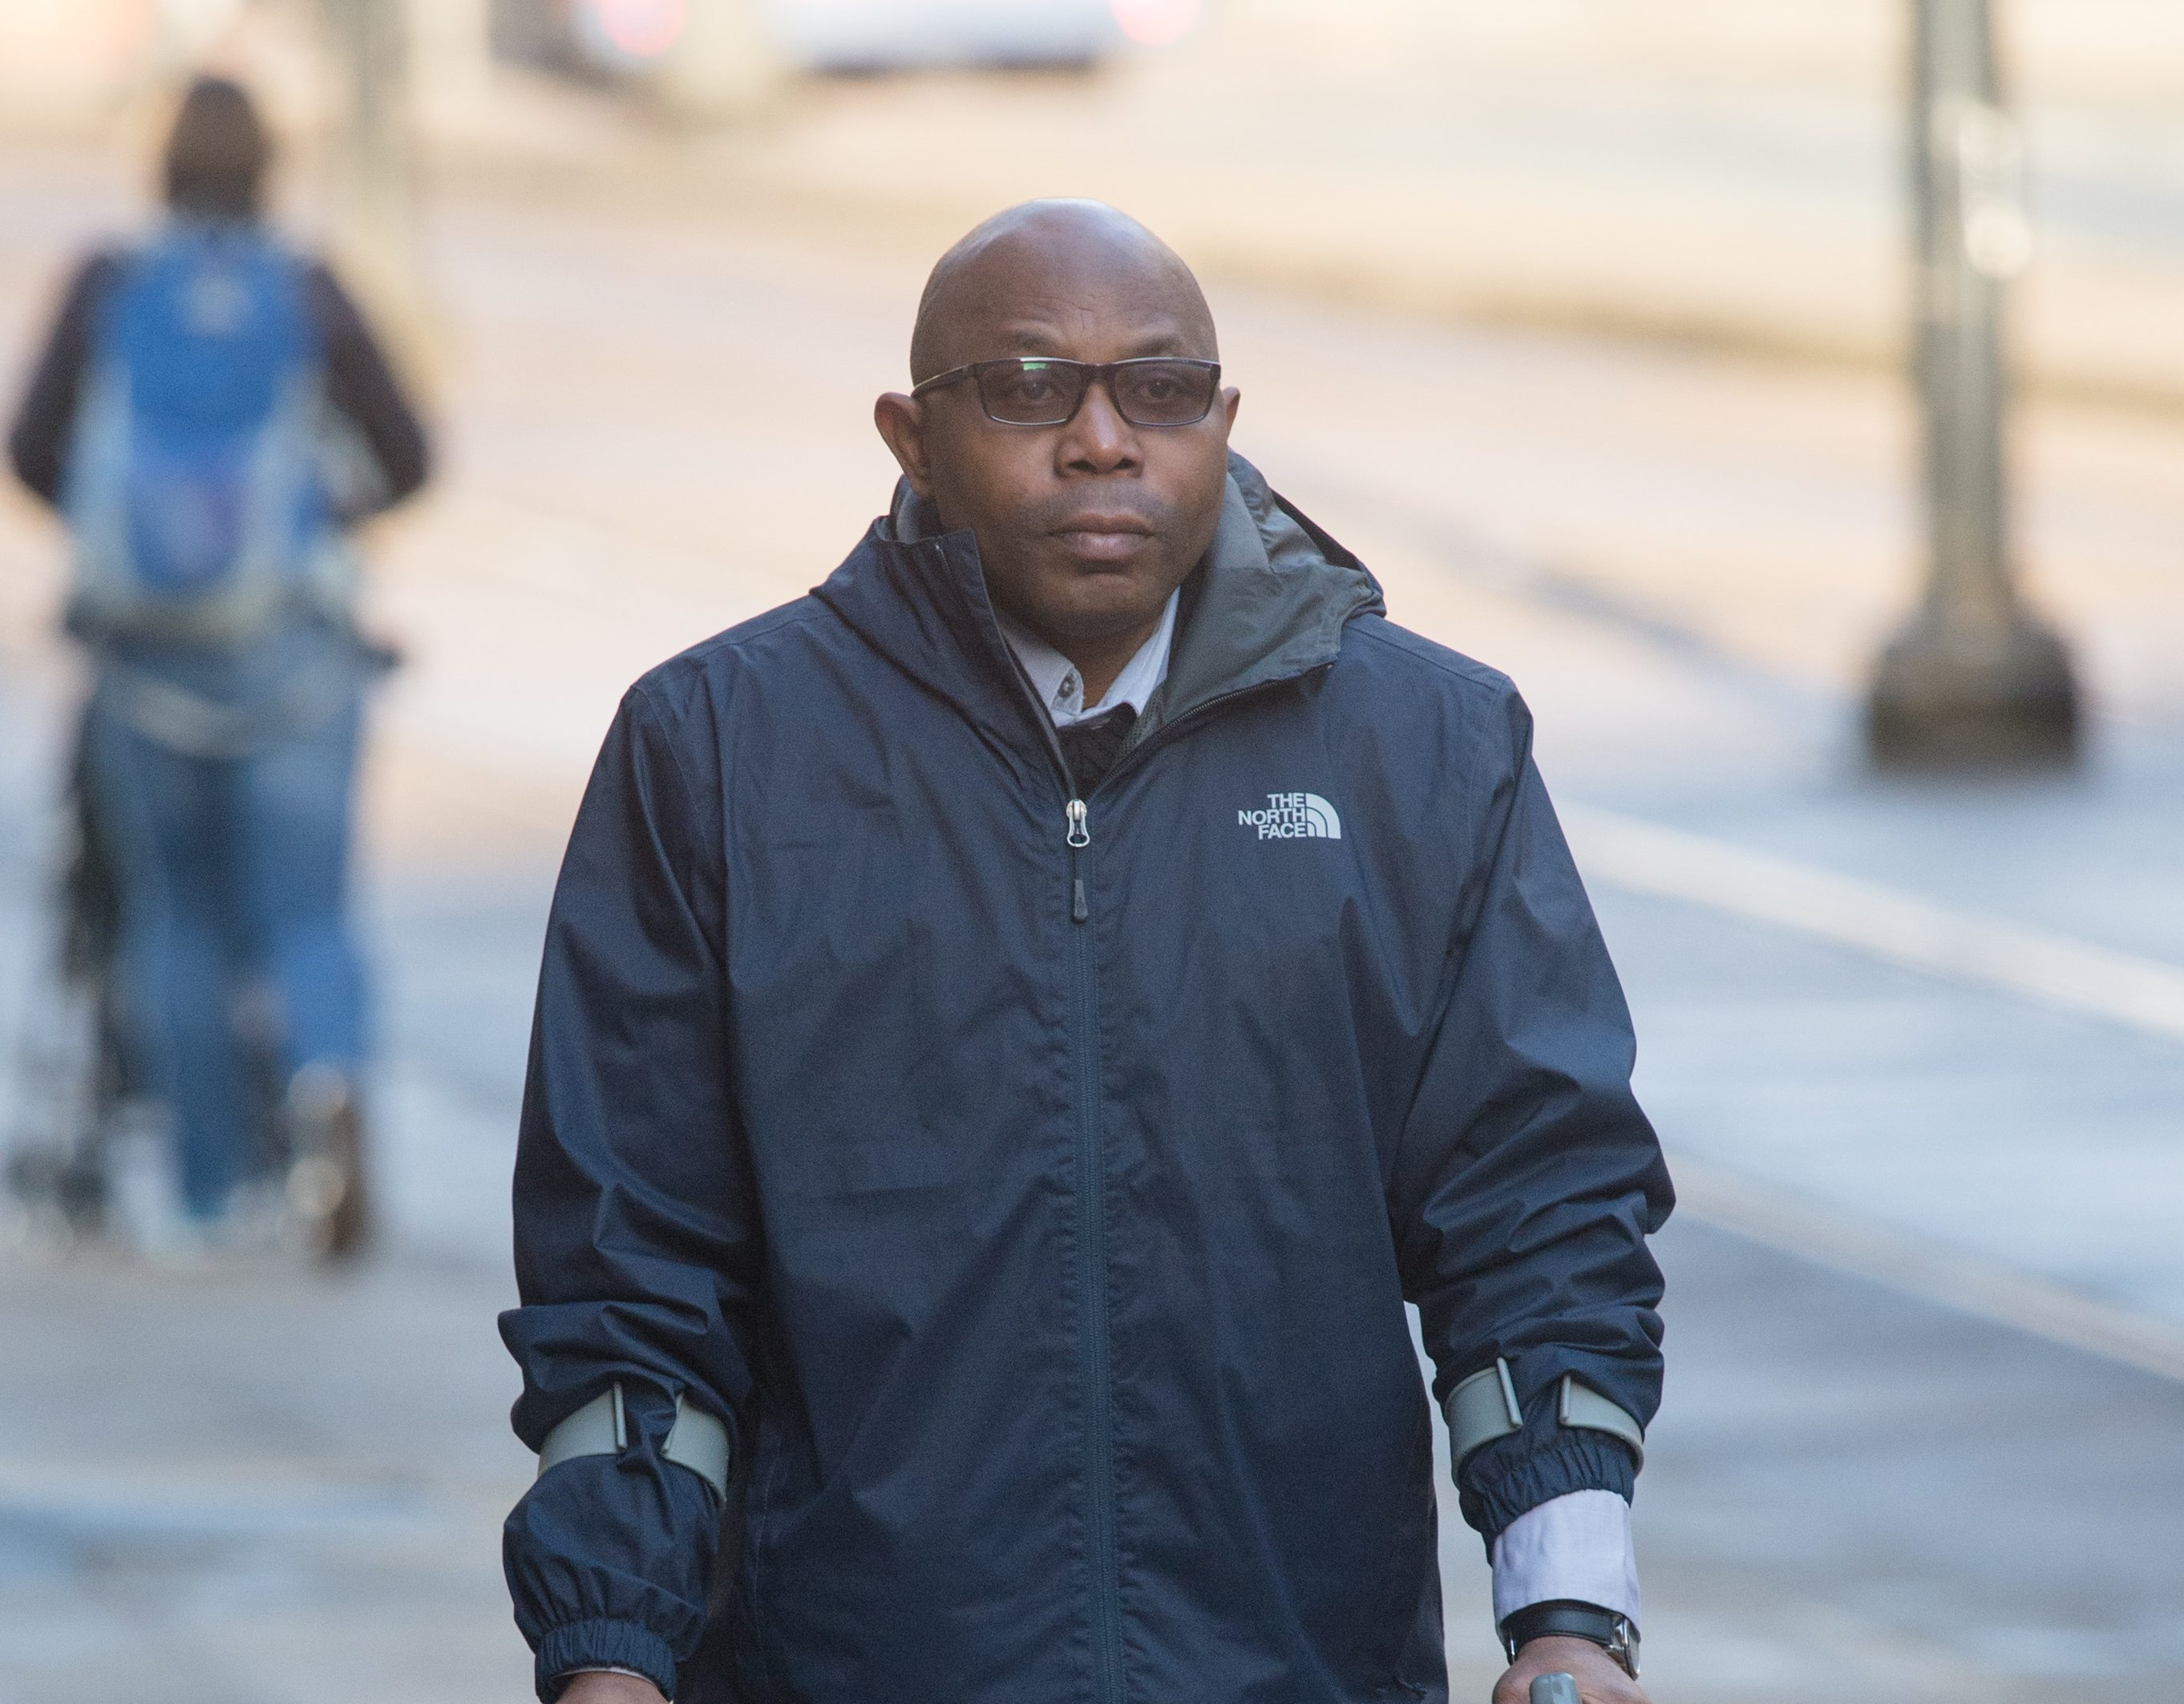 Dr Chizoro Edohasim arriving at court where he was jailed for four years for causing death by dangerous driving after a collision which killed his nine year old daughter Olivia and injured his other daughter. (Cavendish Press)